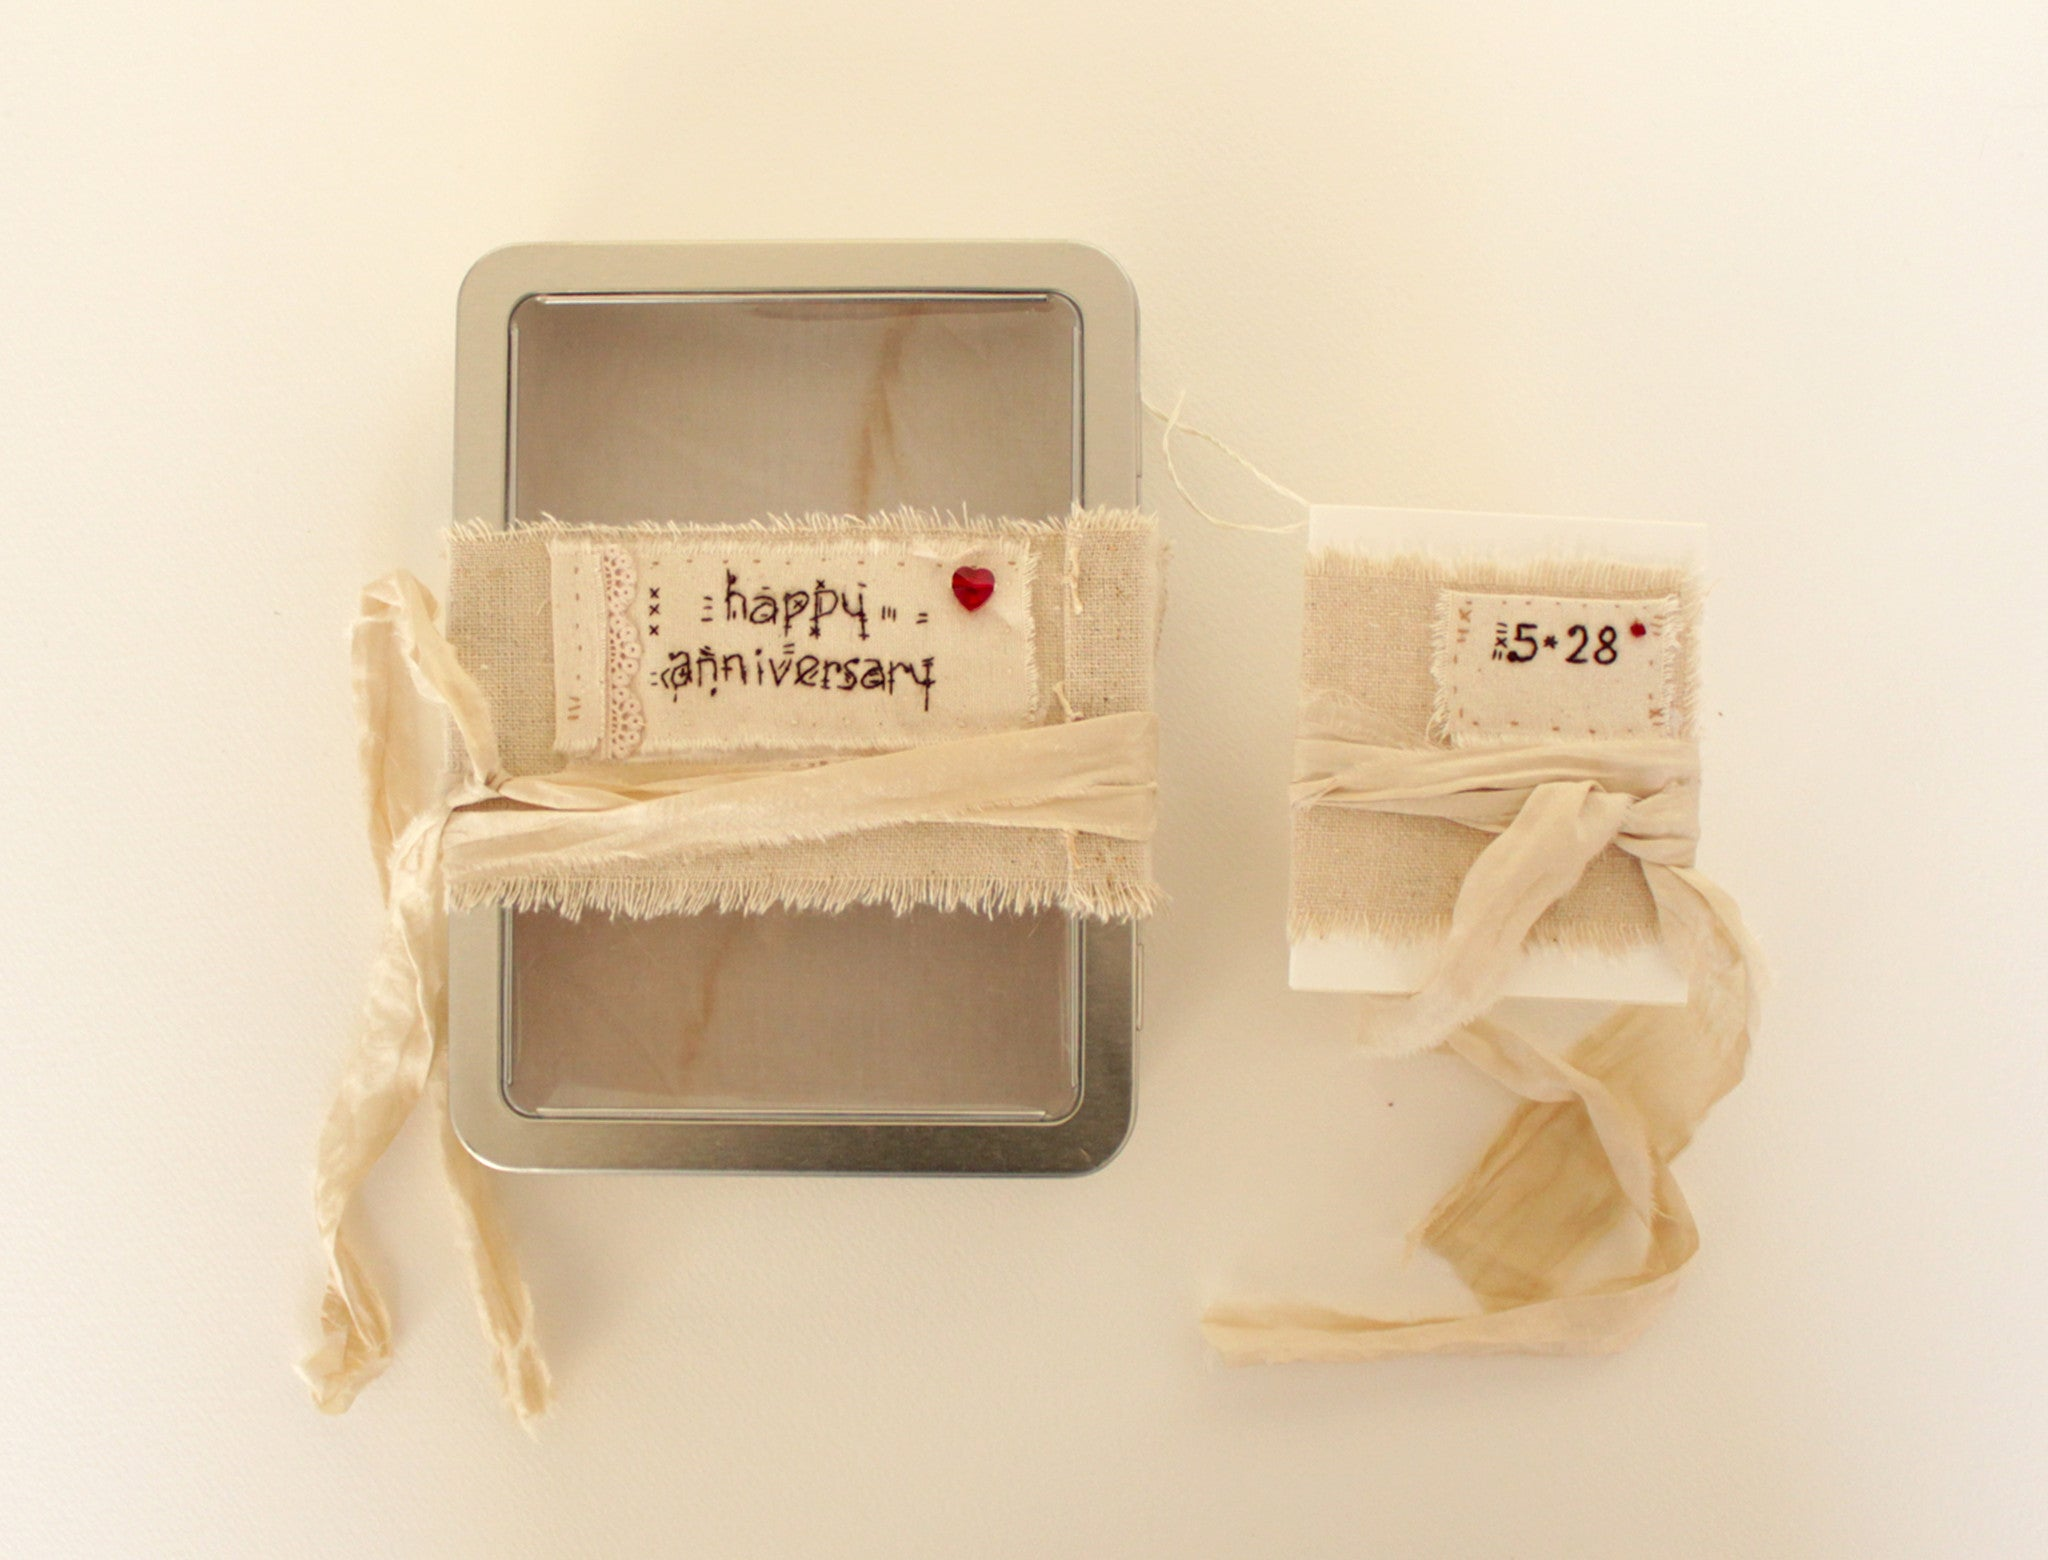 Happy Anniversary -- OOAK personalized tin box gift set -- LOVE IN A BOX